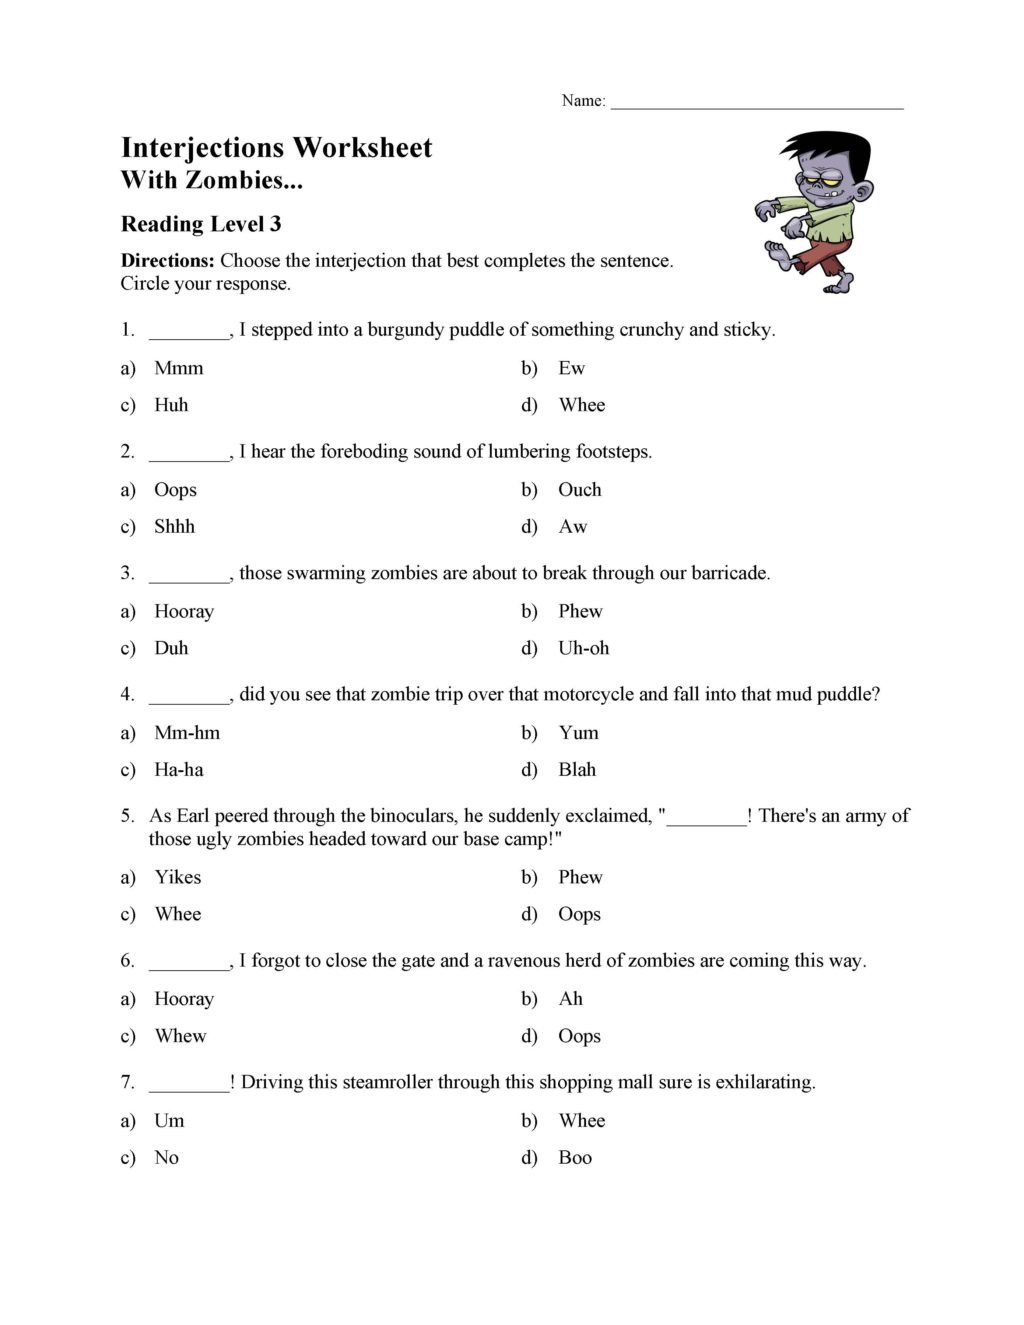 K5 Learning Math Grade 4 Worksheet K5 Learning Englishorksheets for Grade Maths